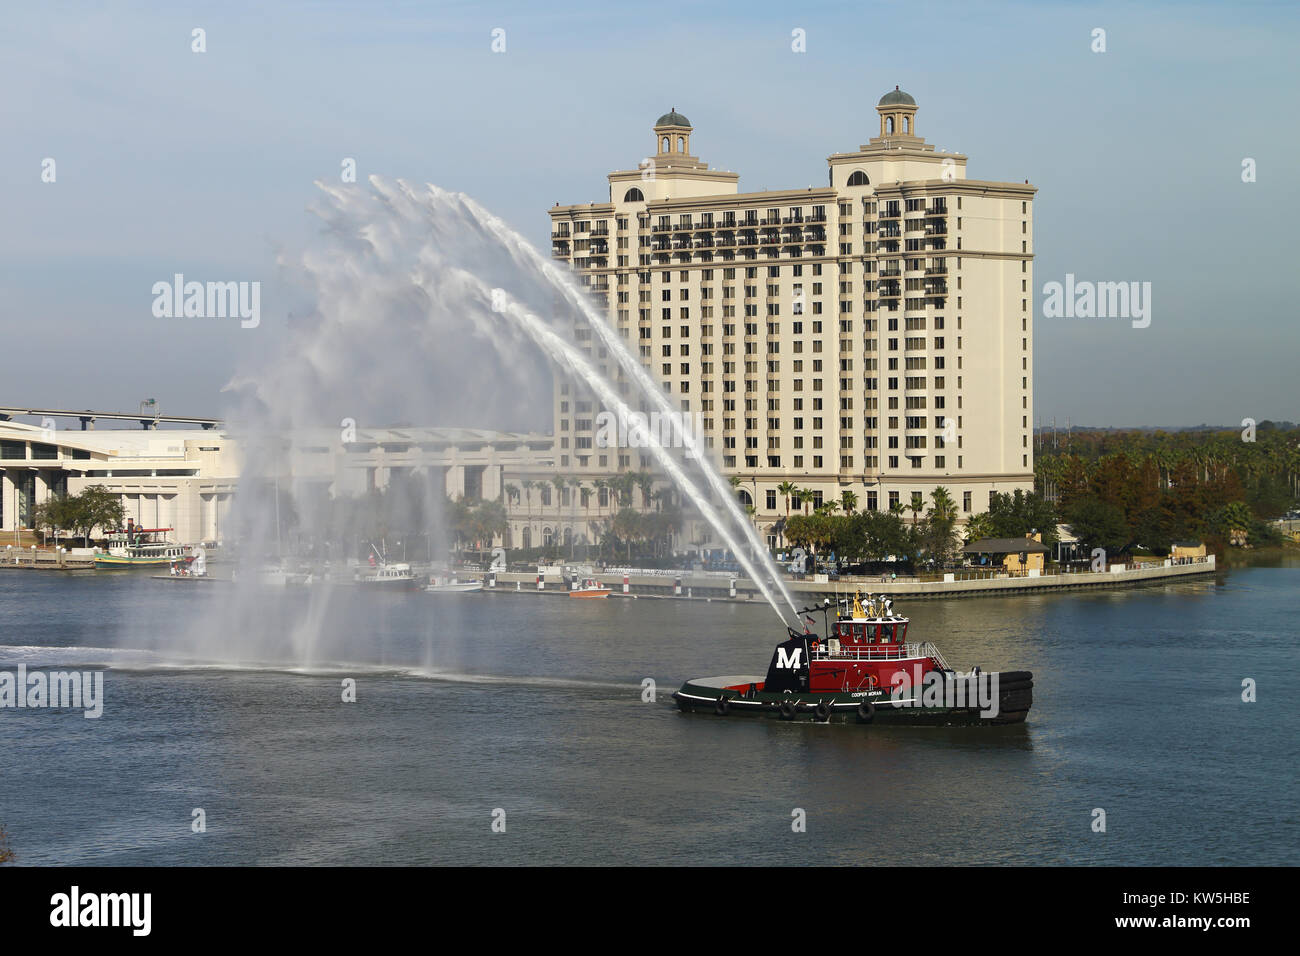 Savannah Georgia Waterfront and Fire Boat - Stock Image